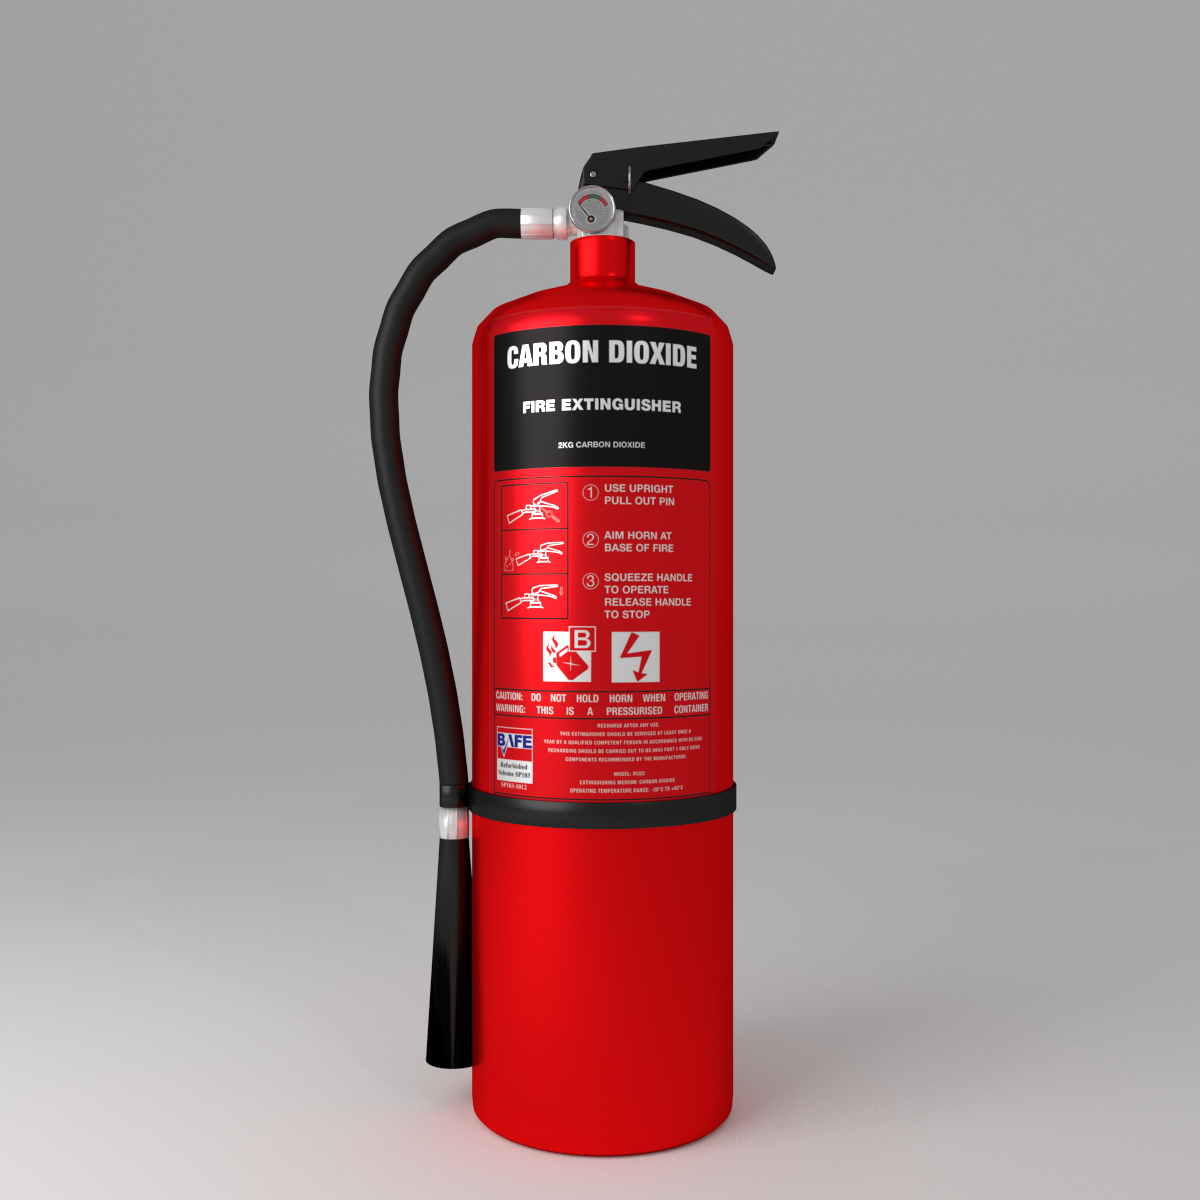 Fire Extinguisher Fire Extinguisher Extinguisher Fire